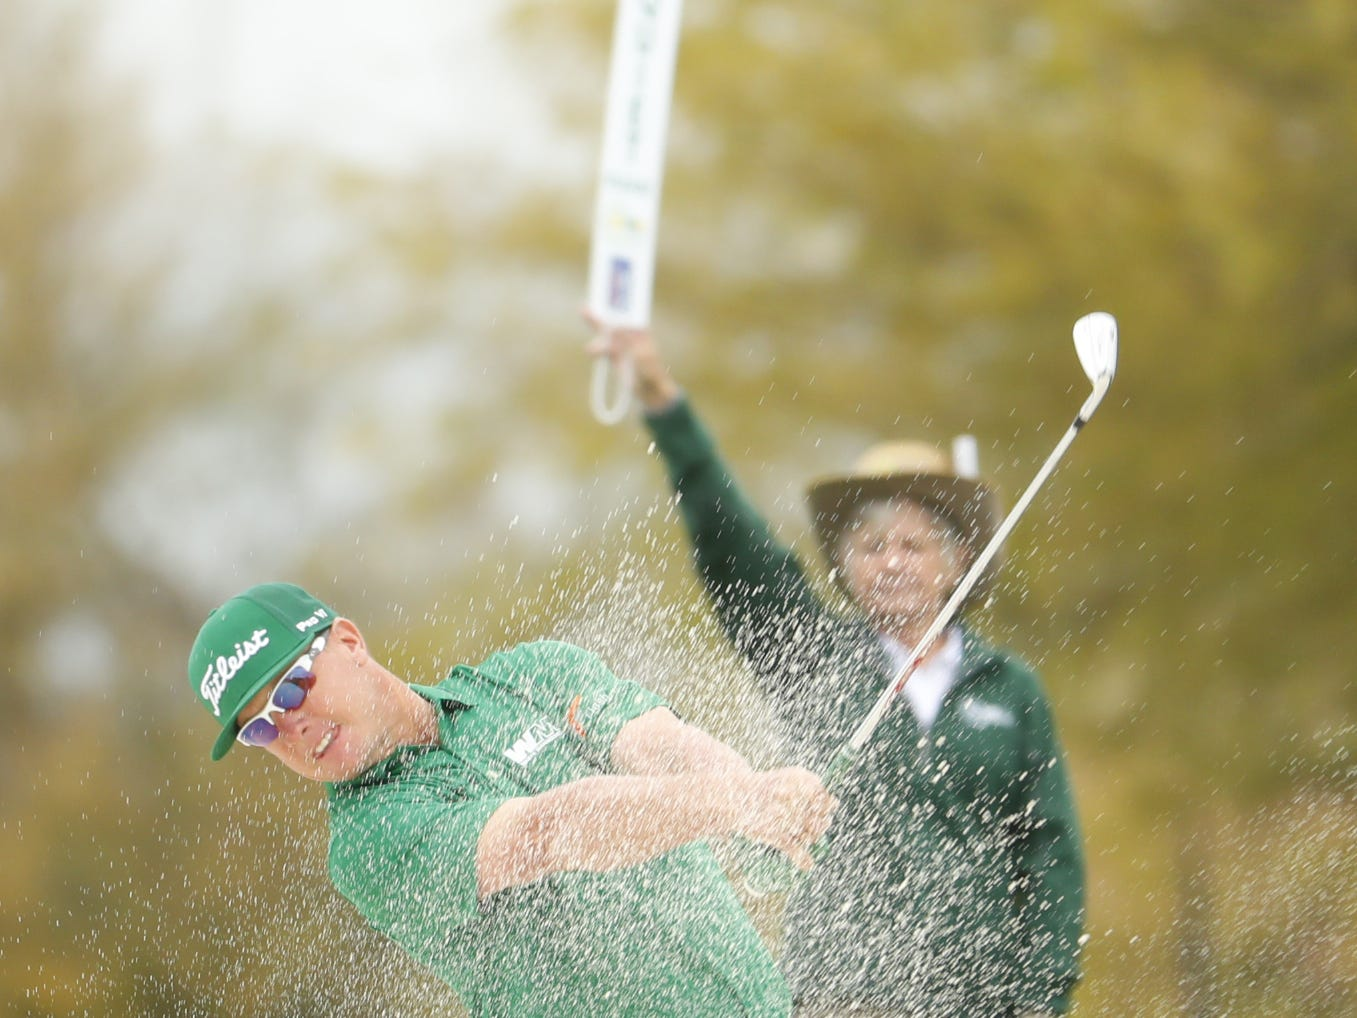 Charley Hoffman hits from the fairway bunker on the 2nd hole during the third round of the Waste Management Phoenix Open at TPC Scottsdale in Scottsdale, Ariz. on February 2, 2019.